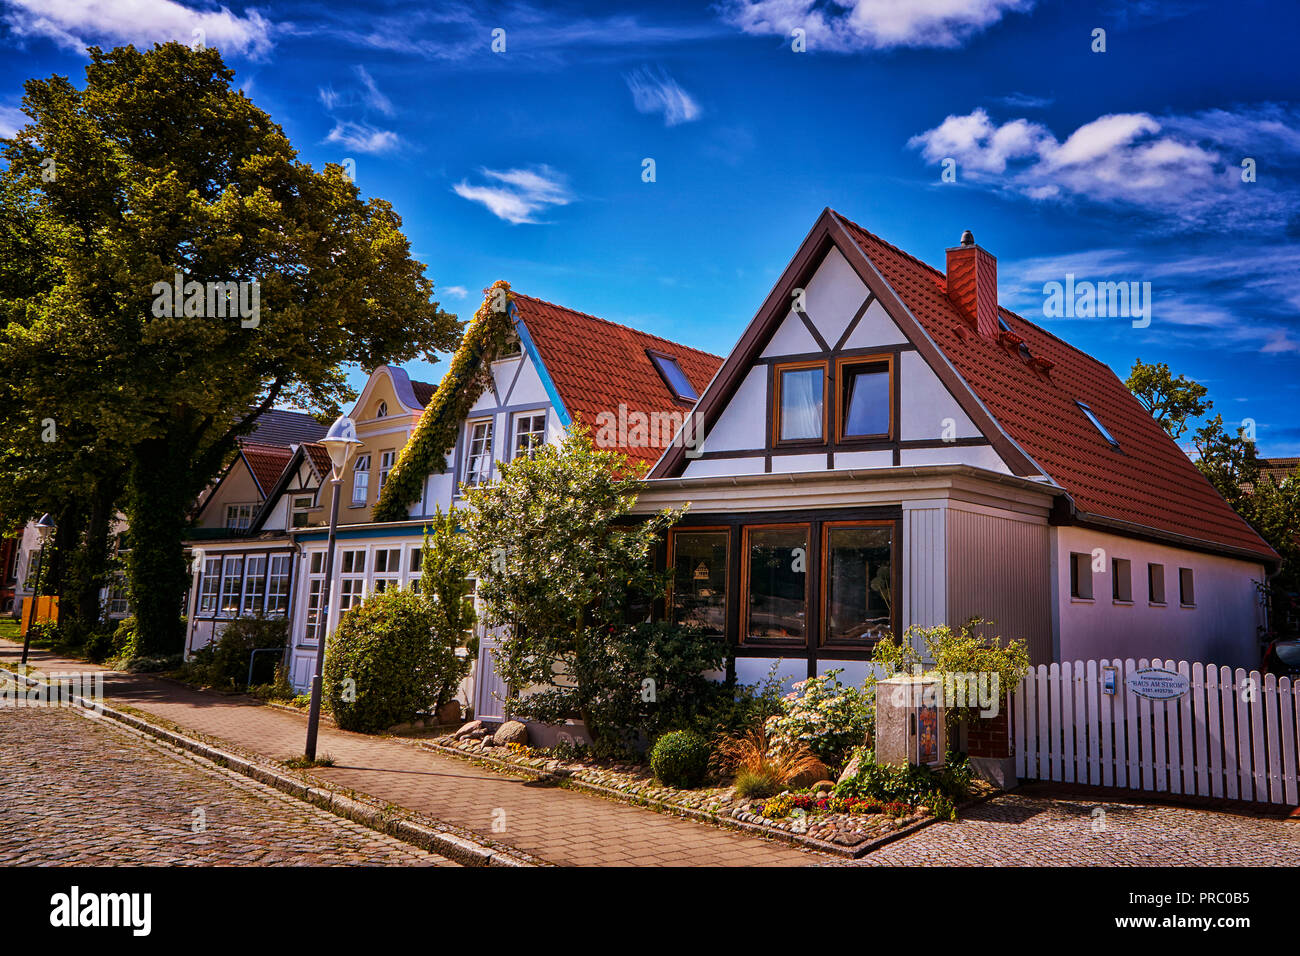 Row of small houses on a cobblestone street as seen in this tourist town Stock Photo